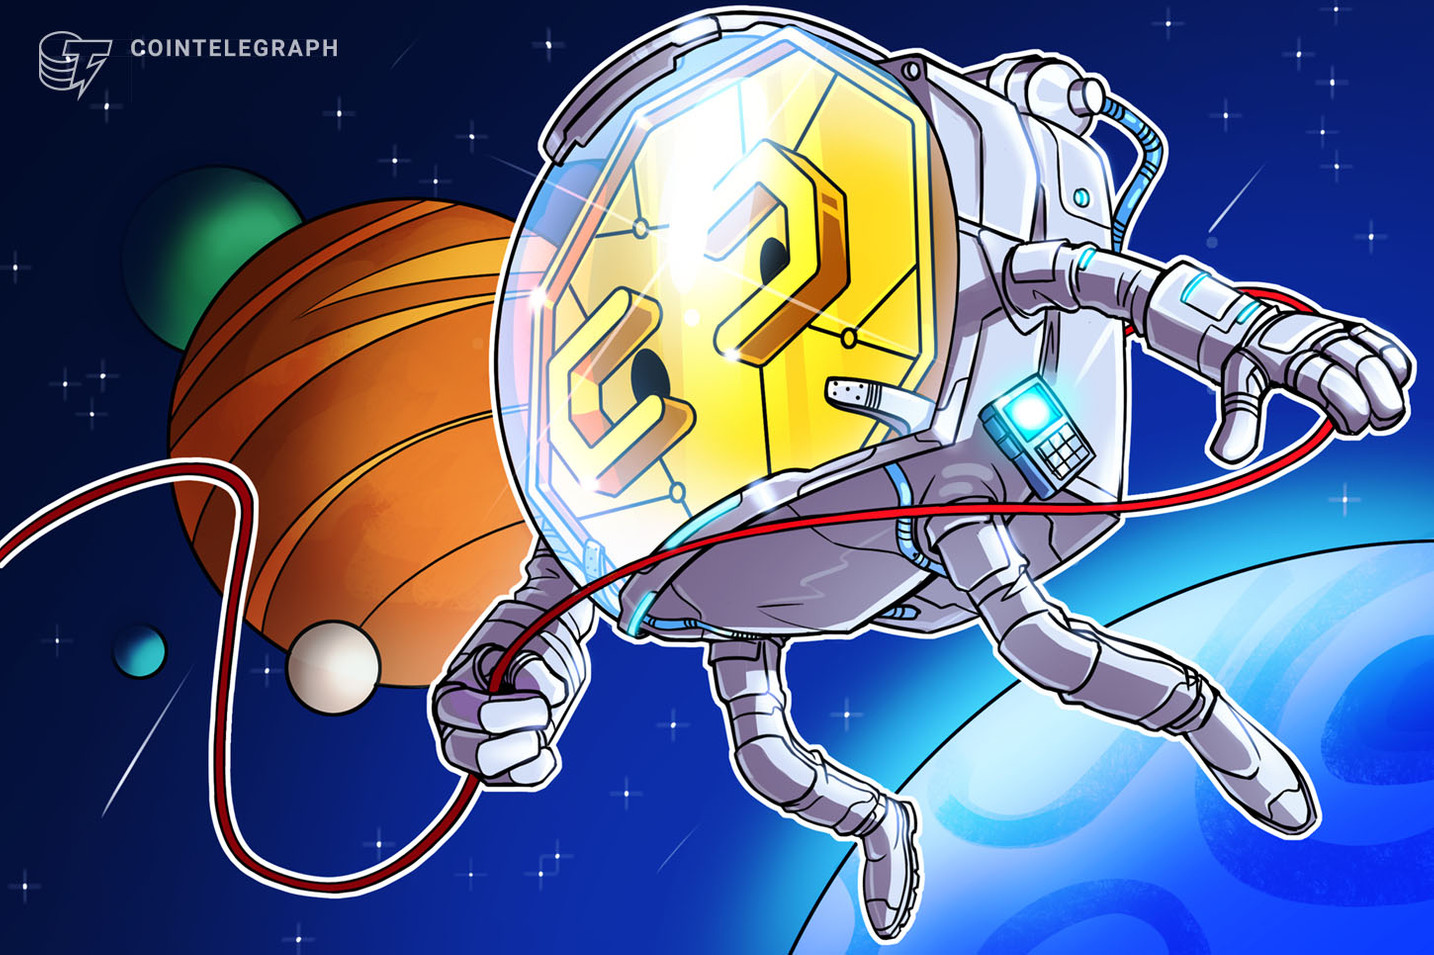 'Drive your lambos to the moon,' says Lindsay Lohan in crypto promotion video